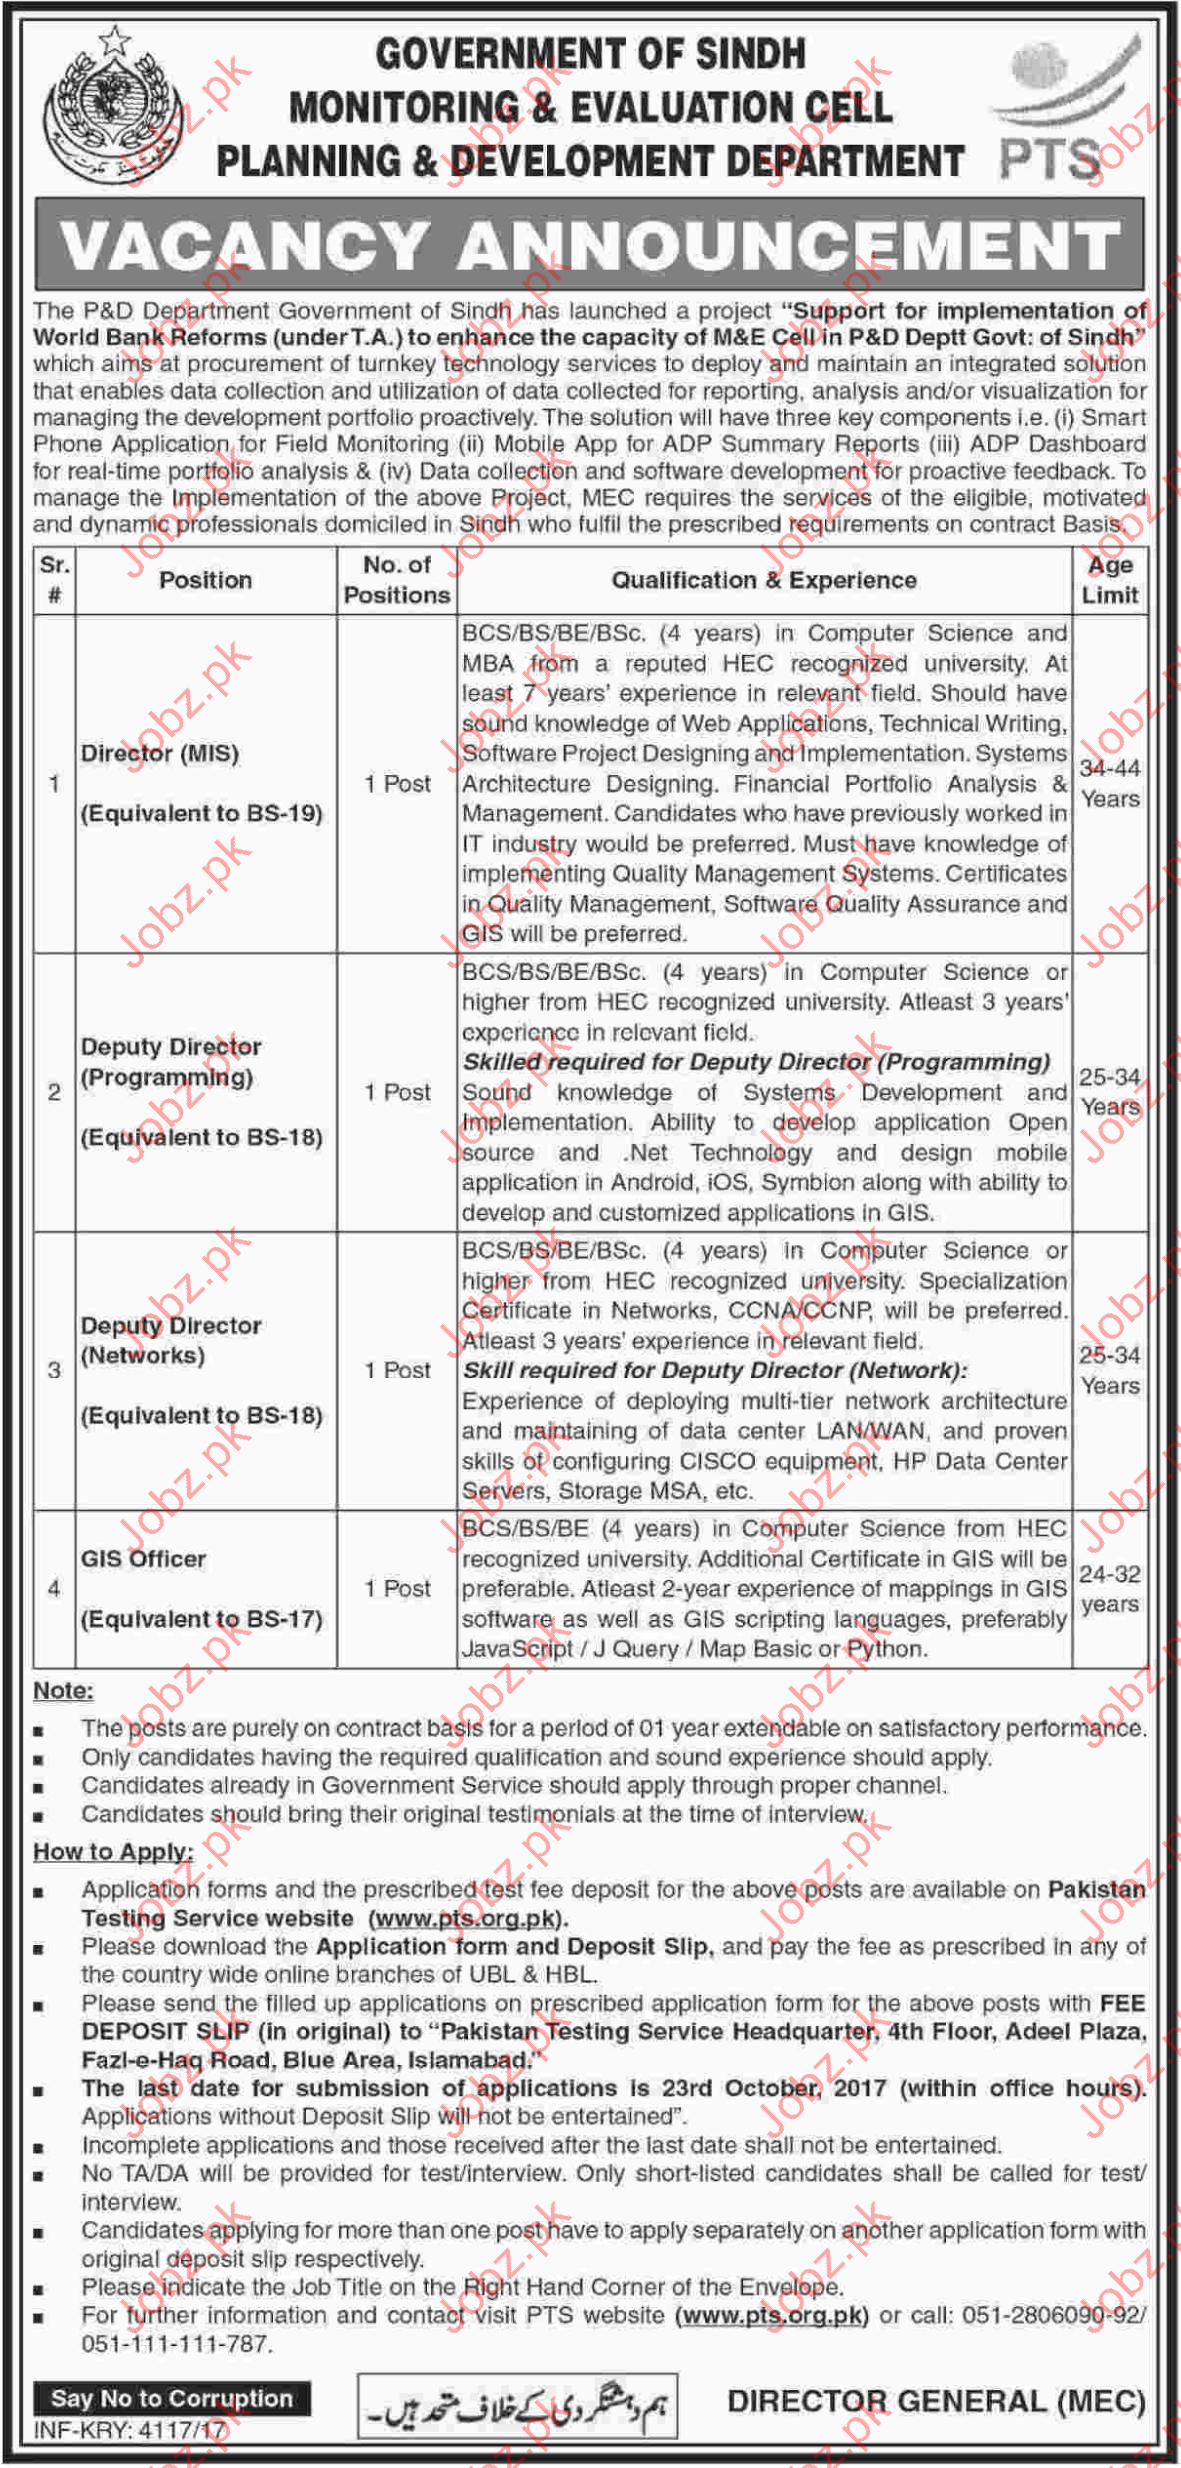 PTS Monitoring & Evaluation Cell Planning Department Jobs